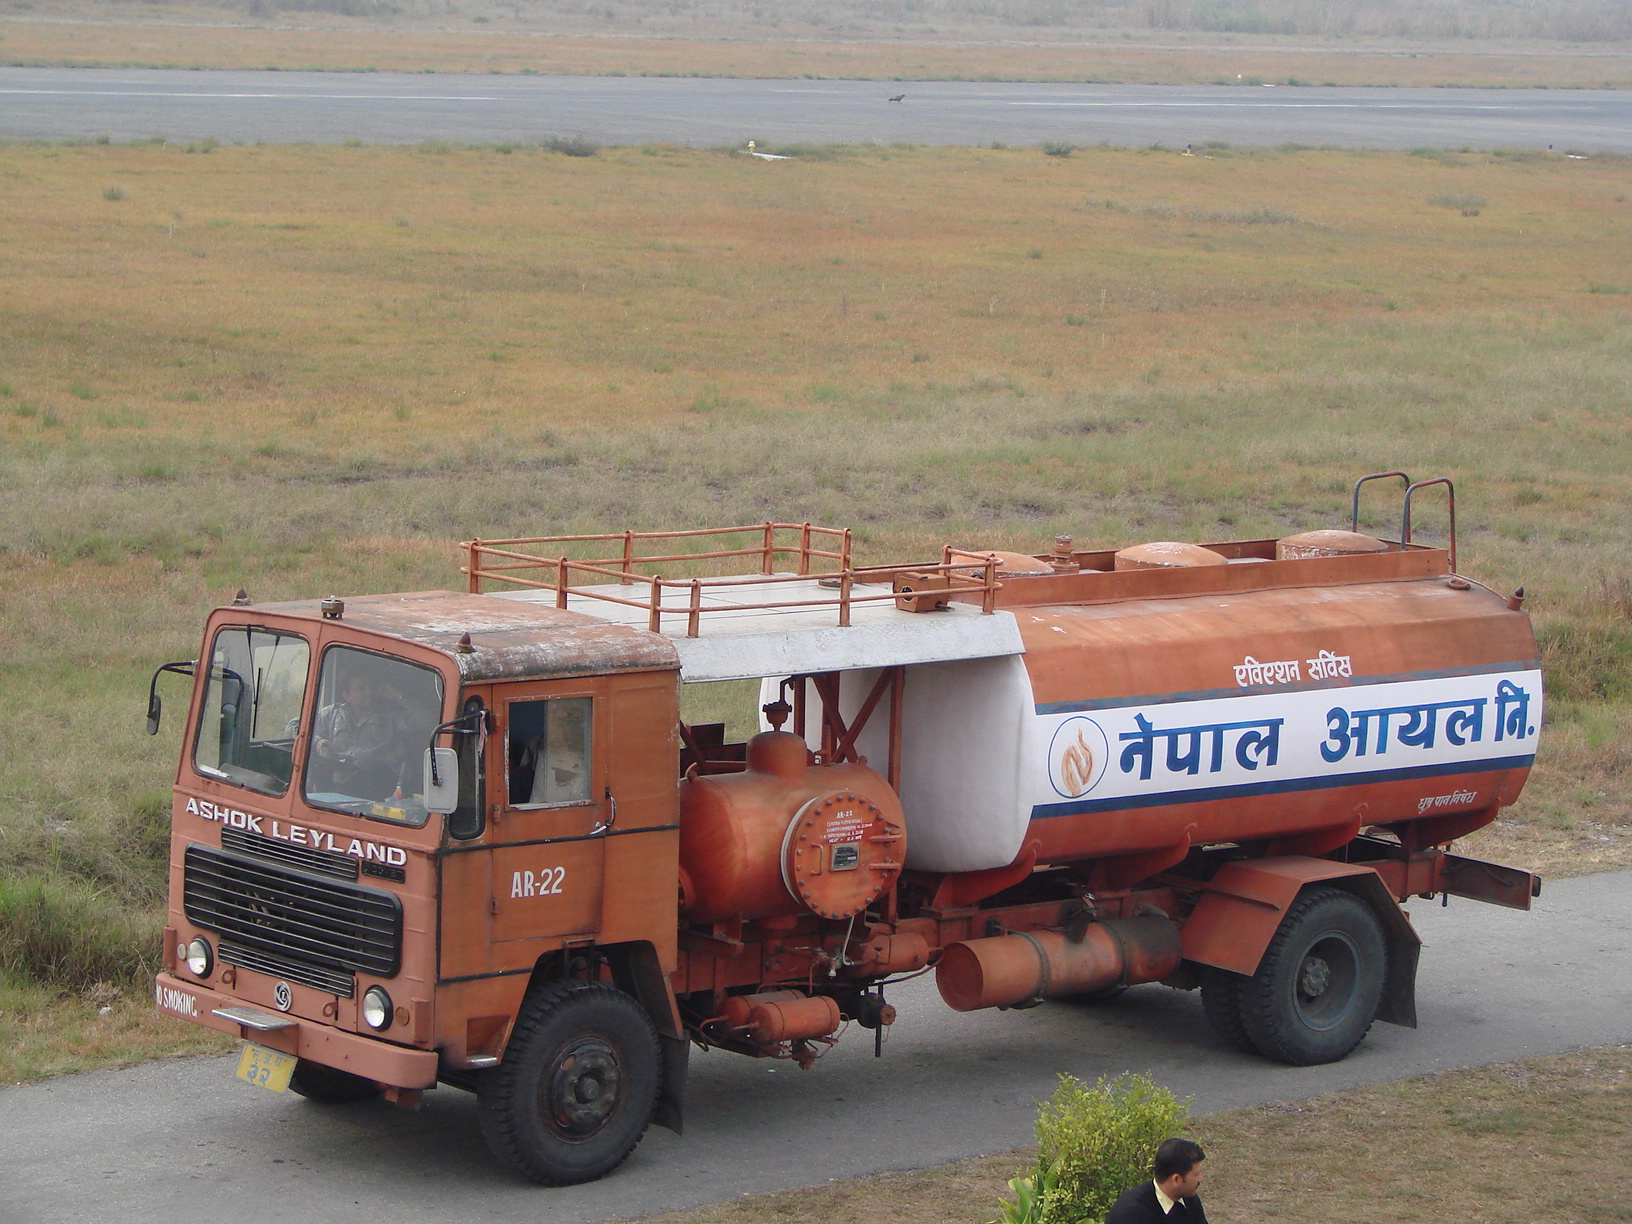 Ashok leyland comet photo - 4